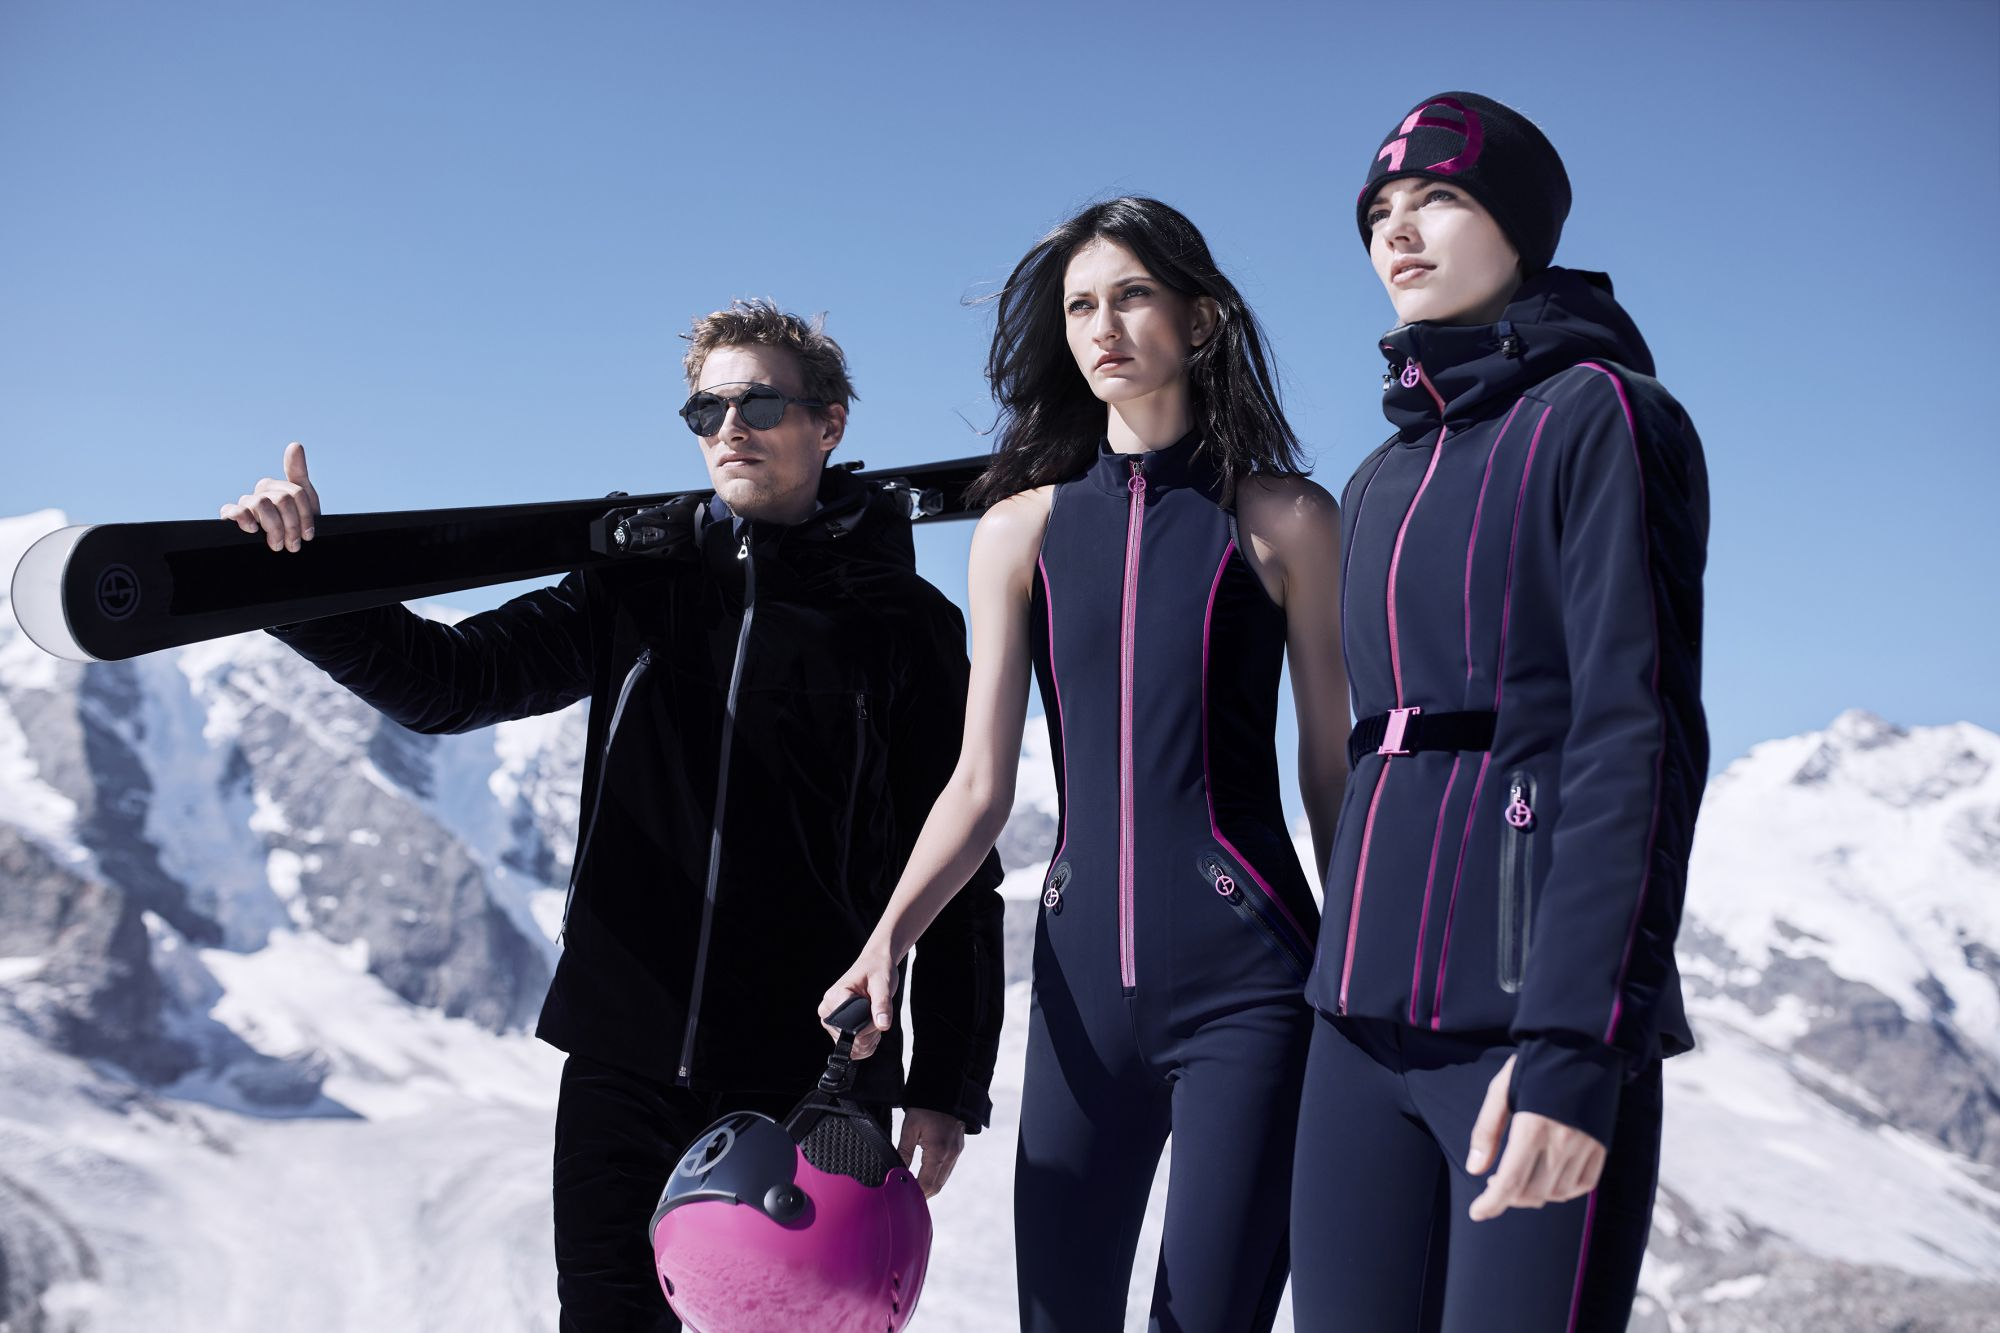 10 Luxury Skiwear Brands To Keep You Chic On The Slopes